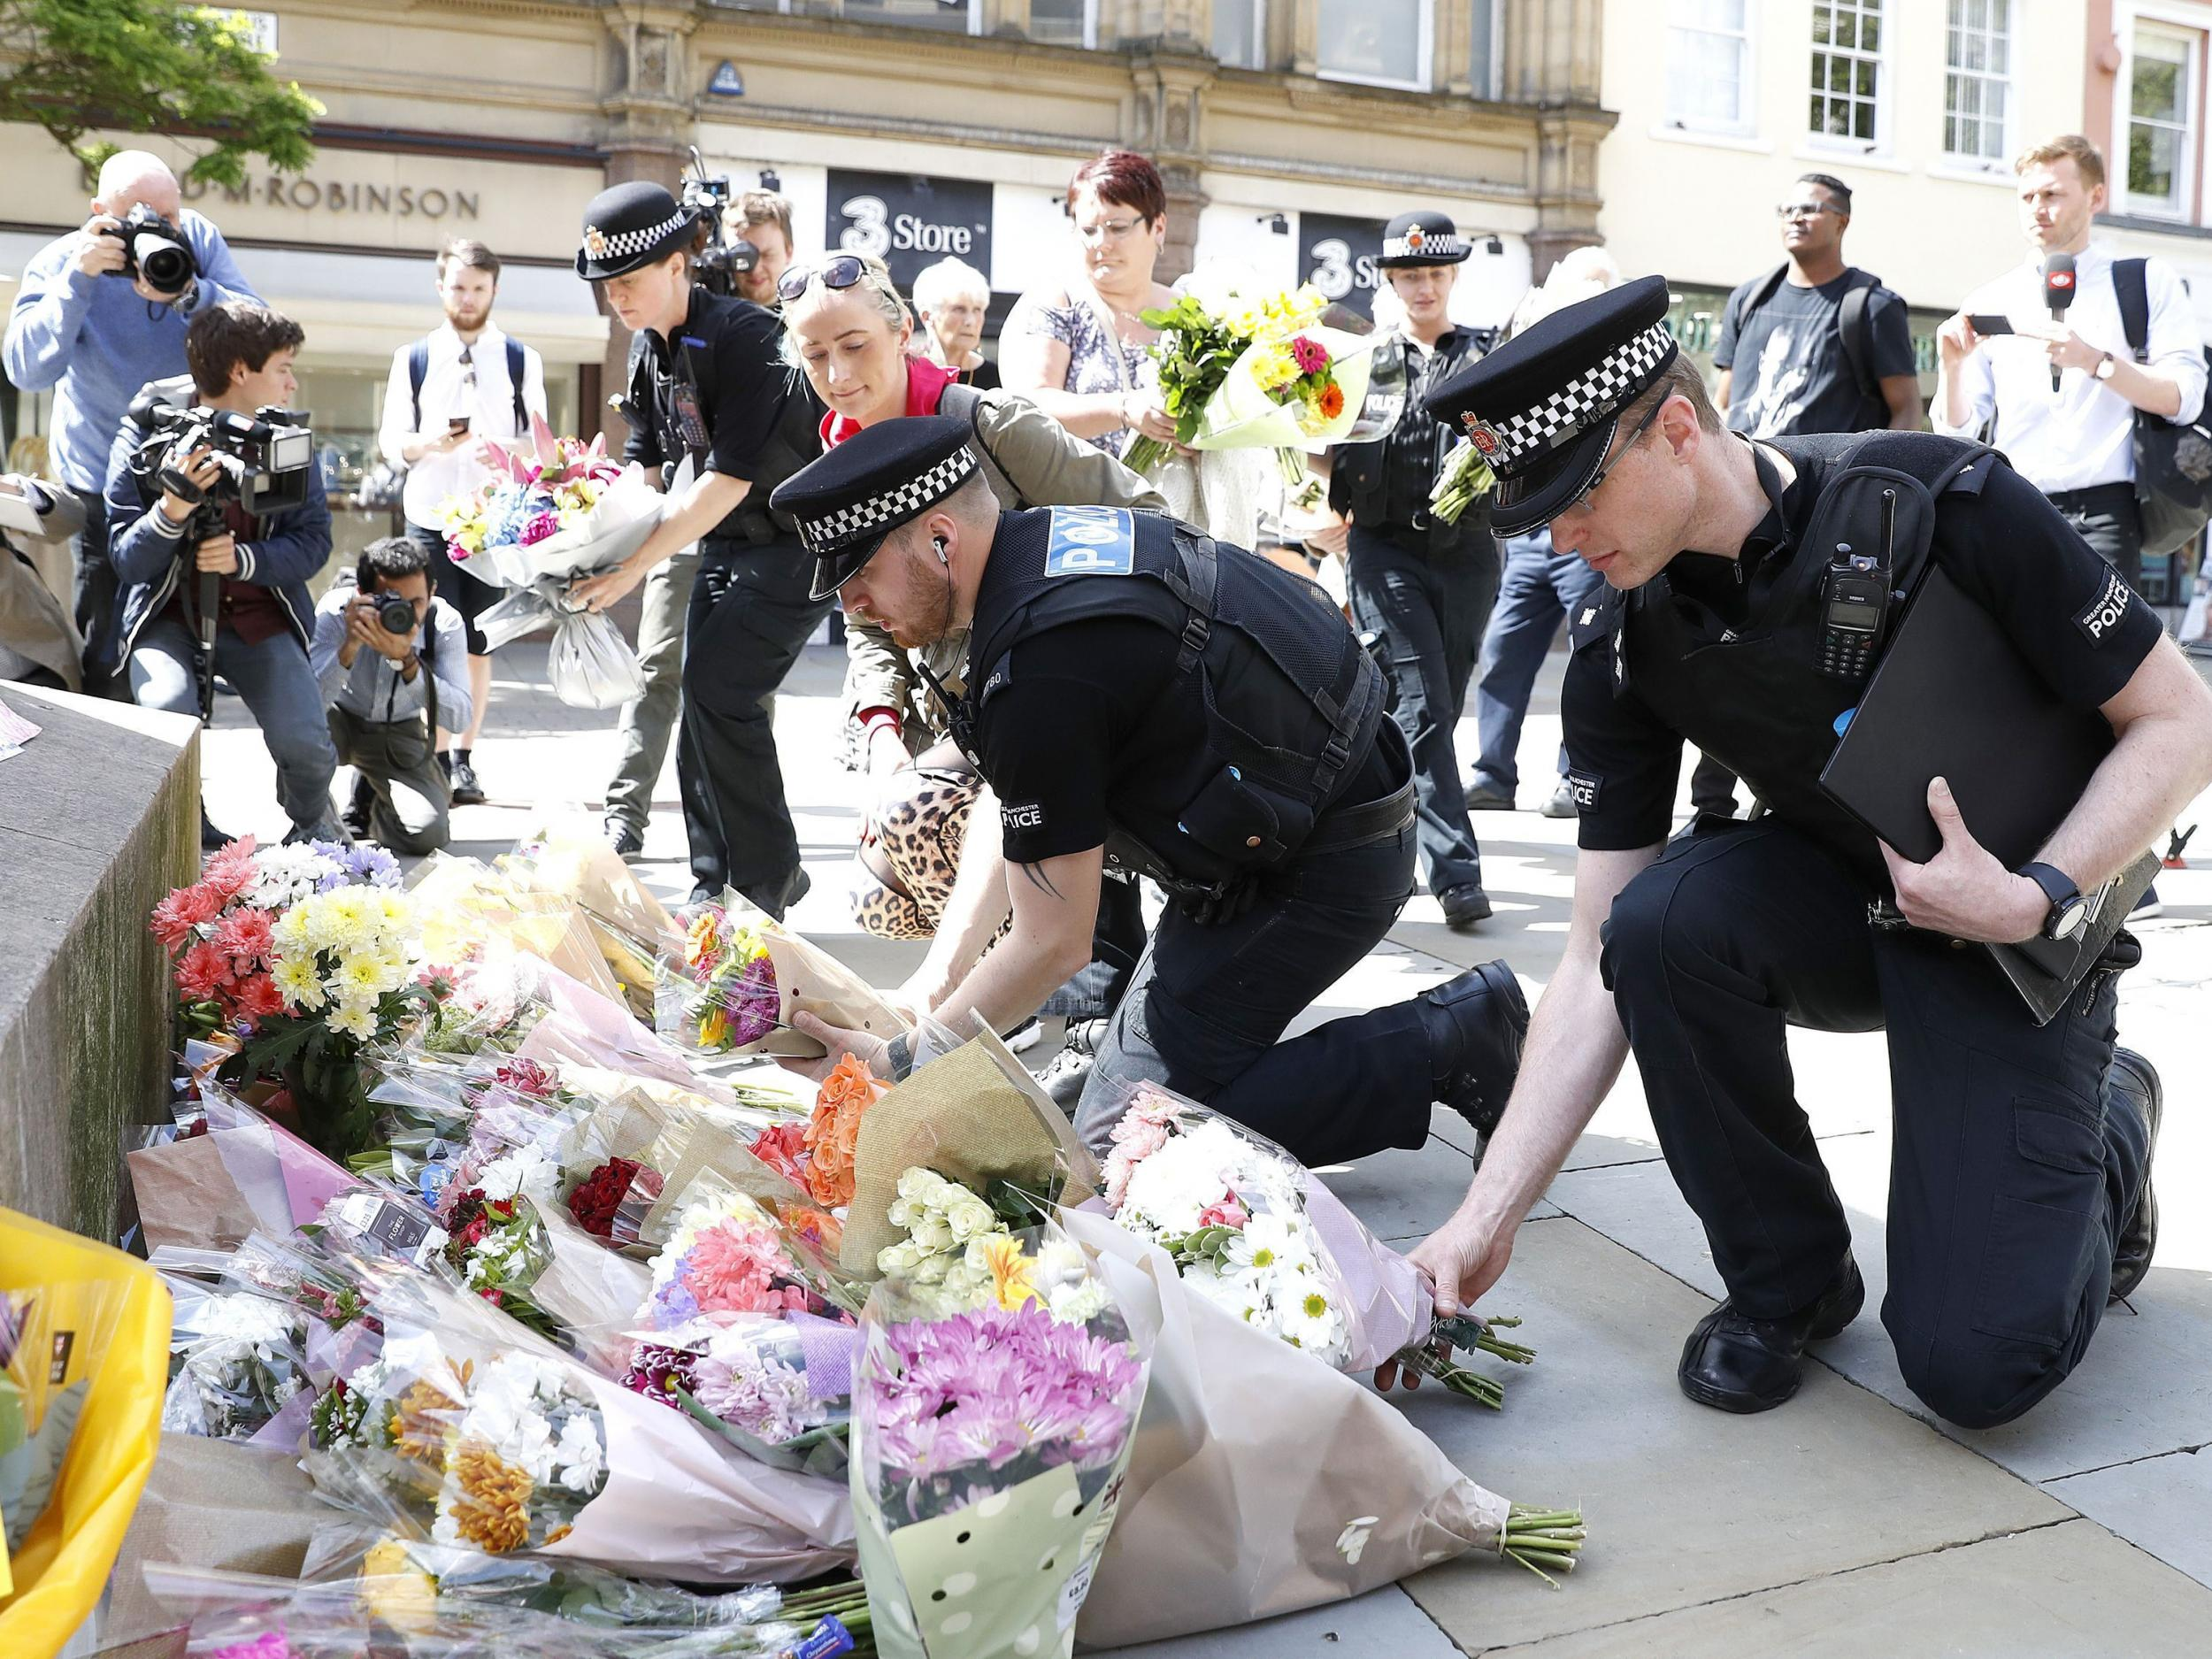 Manchester Arena Bombing Victims Families And Survivors Gather On